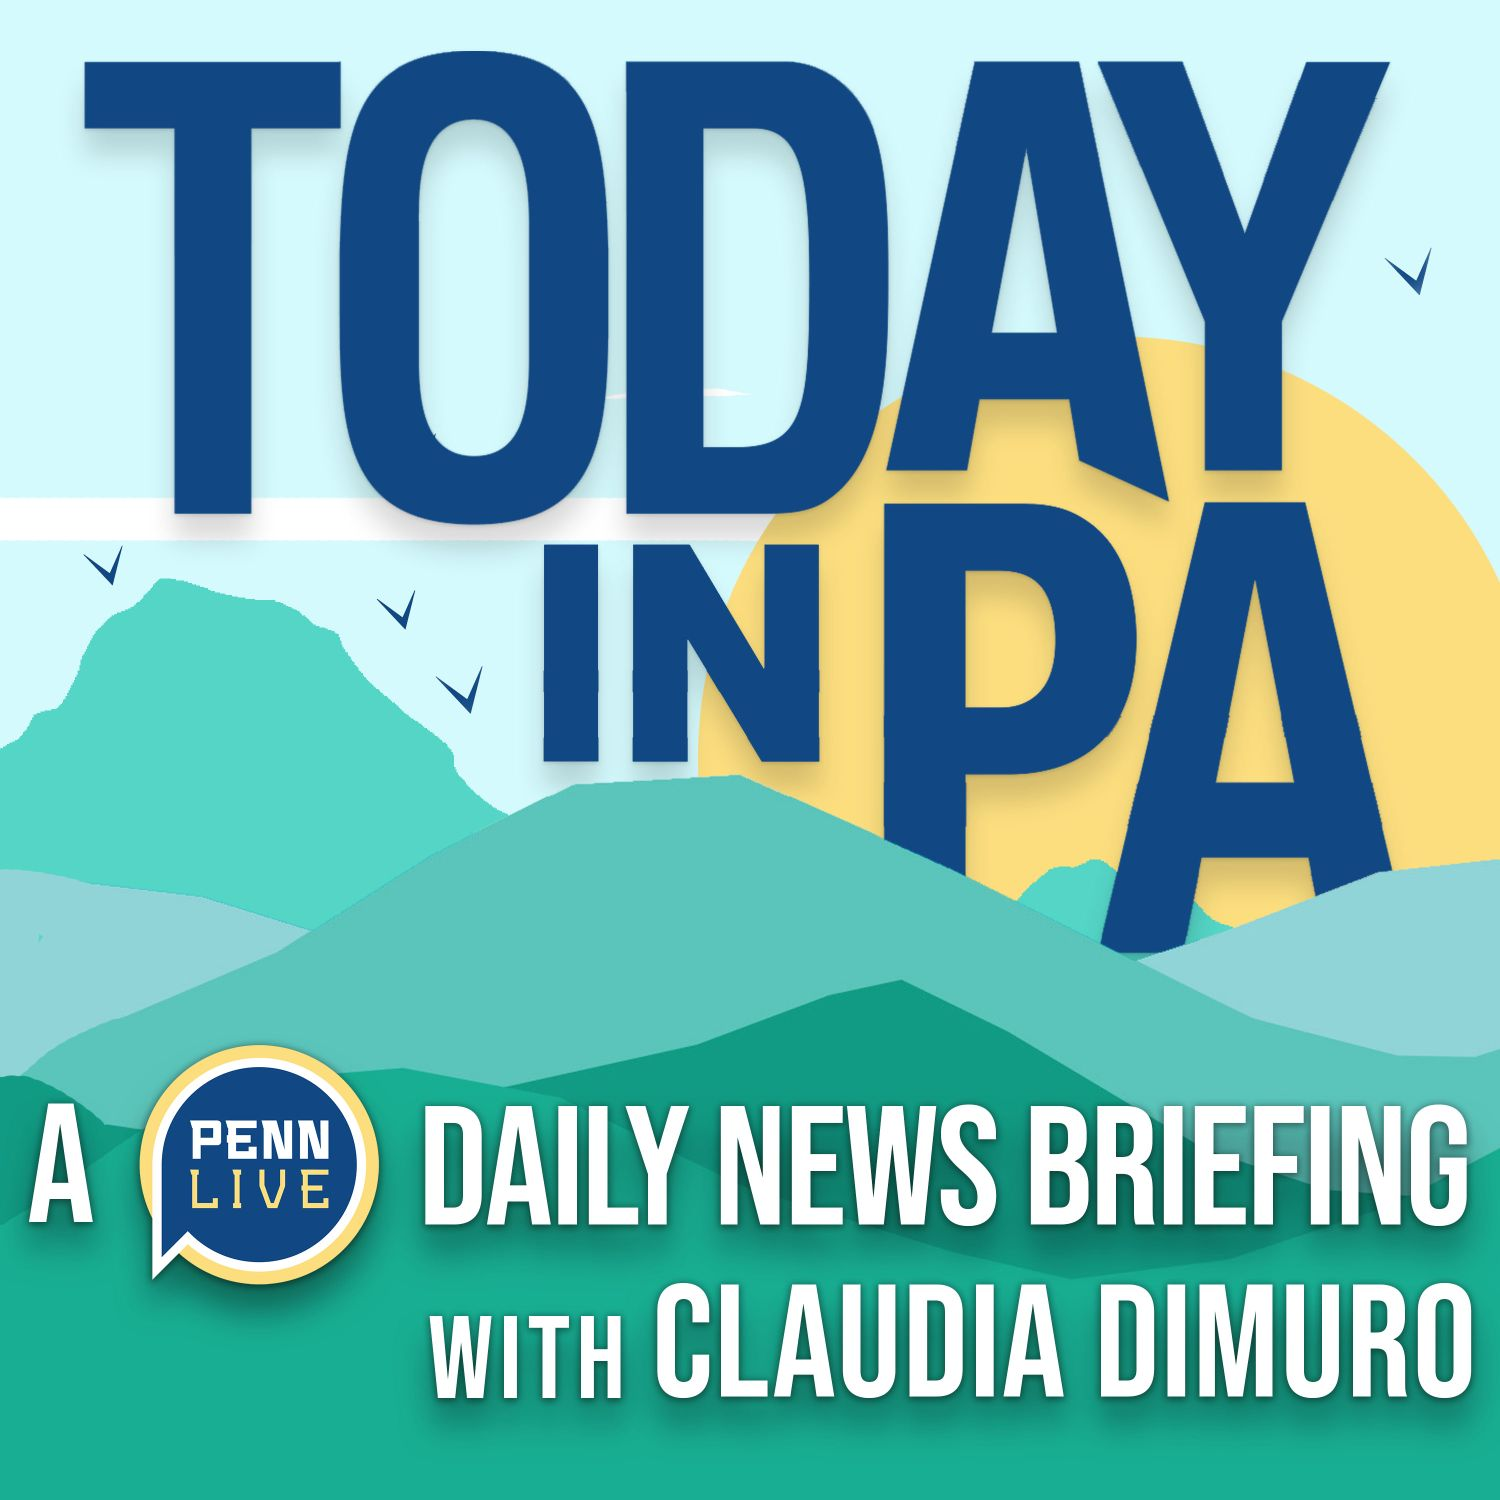 Today in PA | A PennLive daily news briefing with Claudia Dimuro